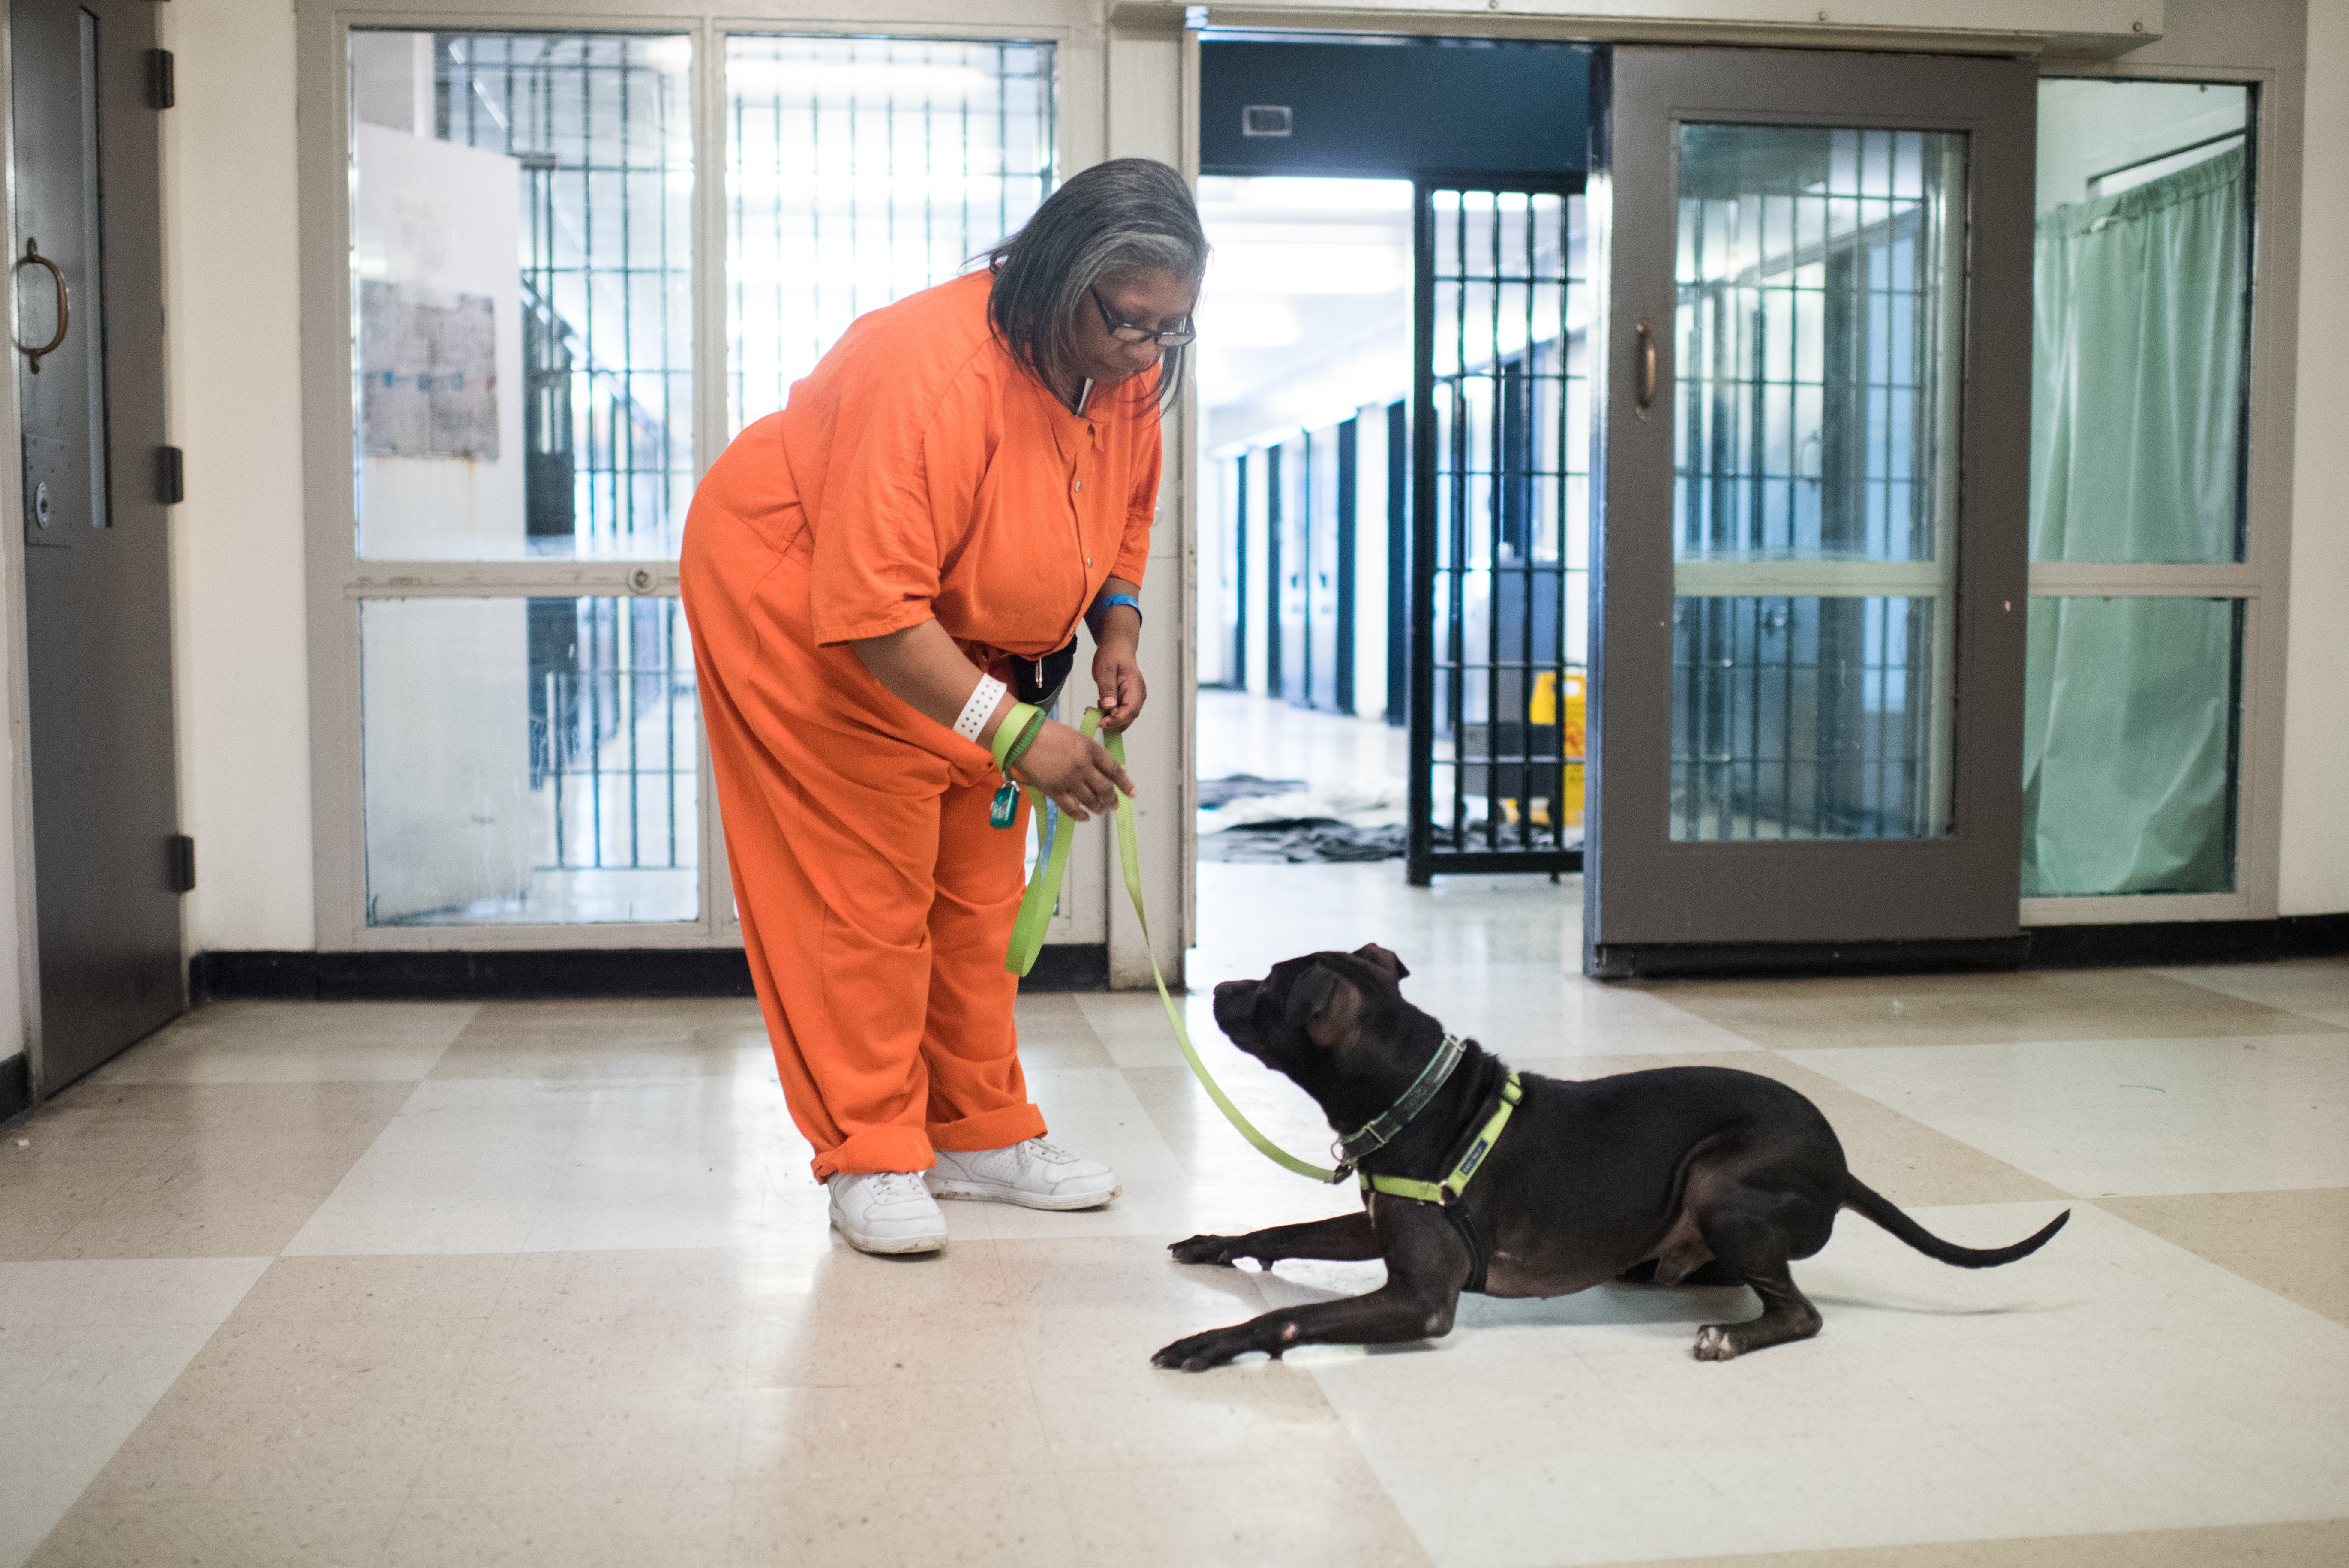 Susan and Denali train with New Leash on Life, a non-profit that teaches inmates dog-training and grooming skills so they can find work once they leave prison. (Credit: Jon Tan, Dreamlite Photography).